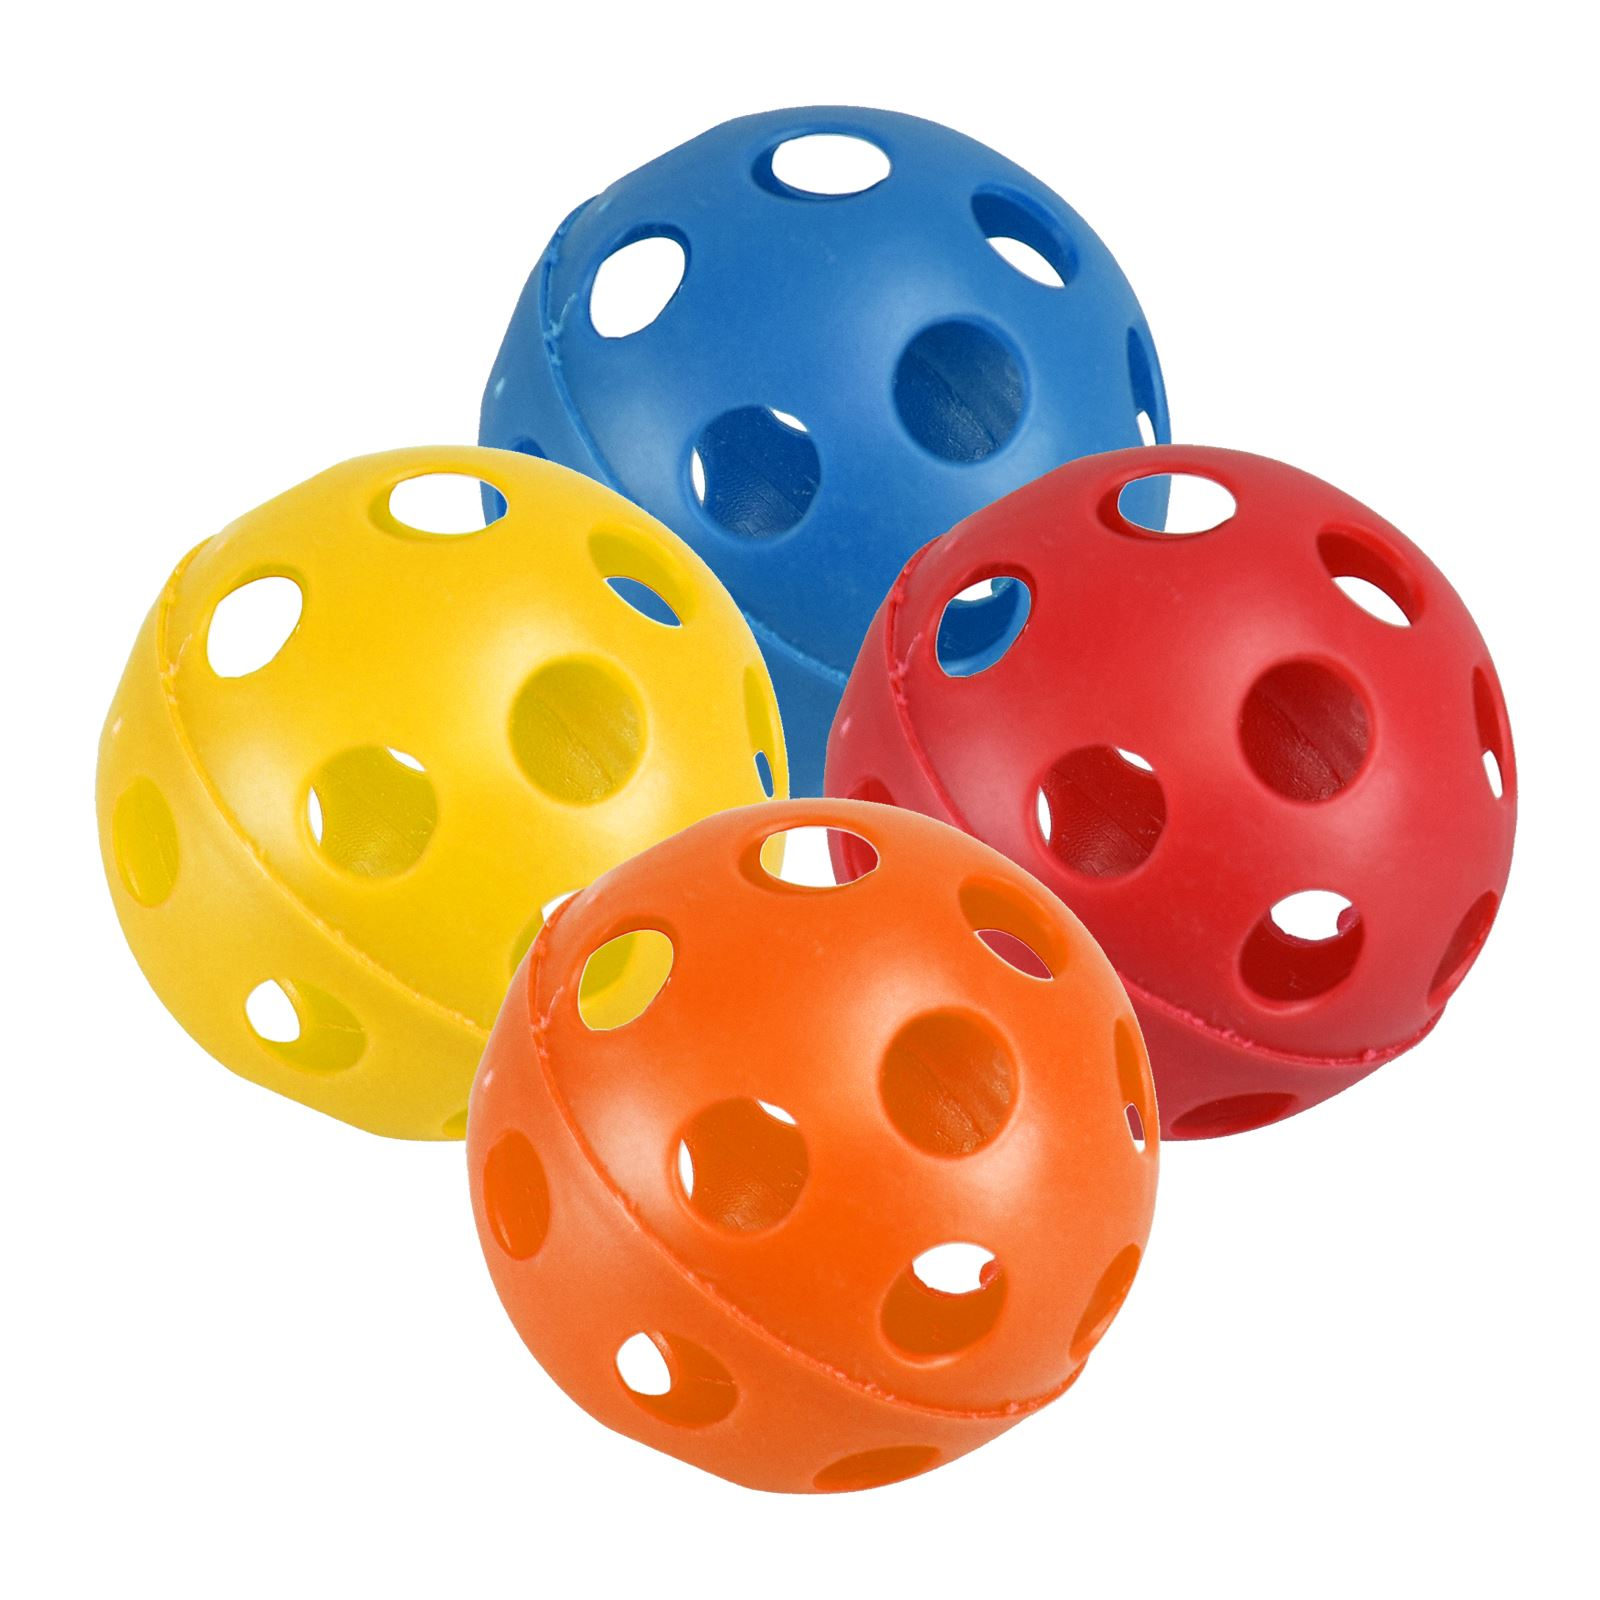 Plastic Toy Balls : Pack pet play balls large hollow plastic coloured air